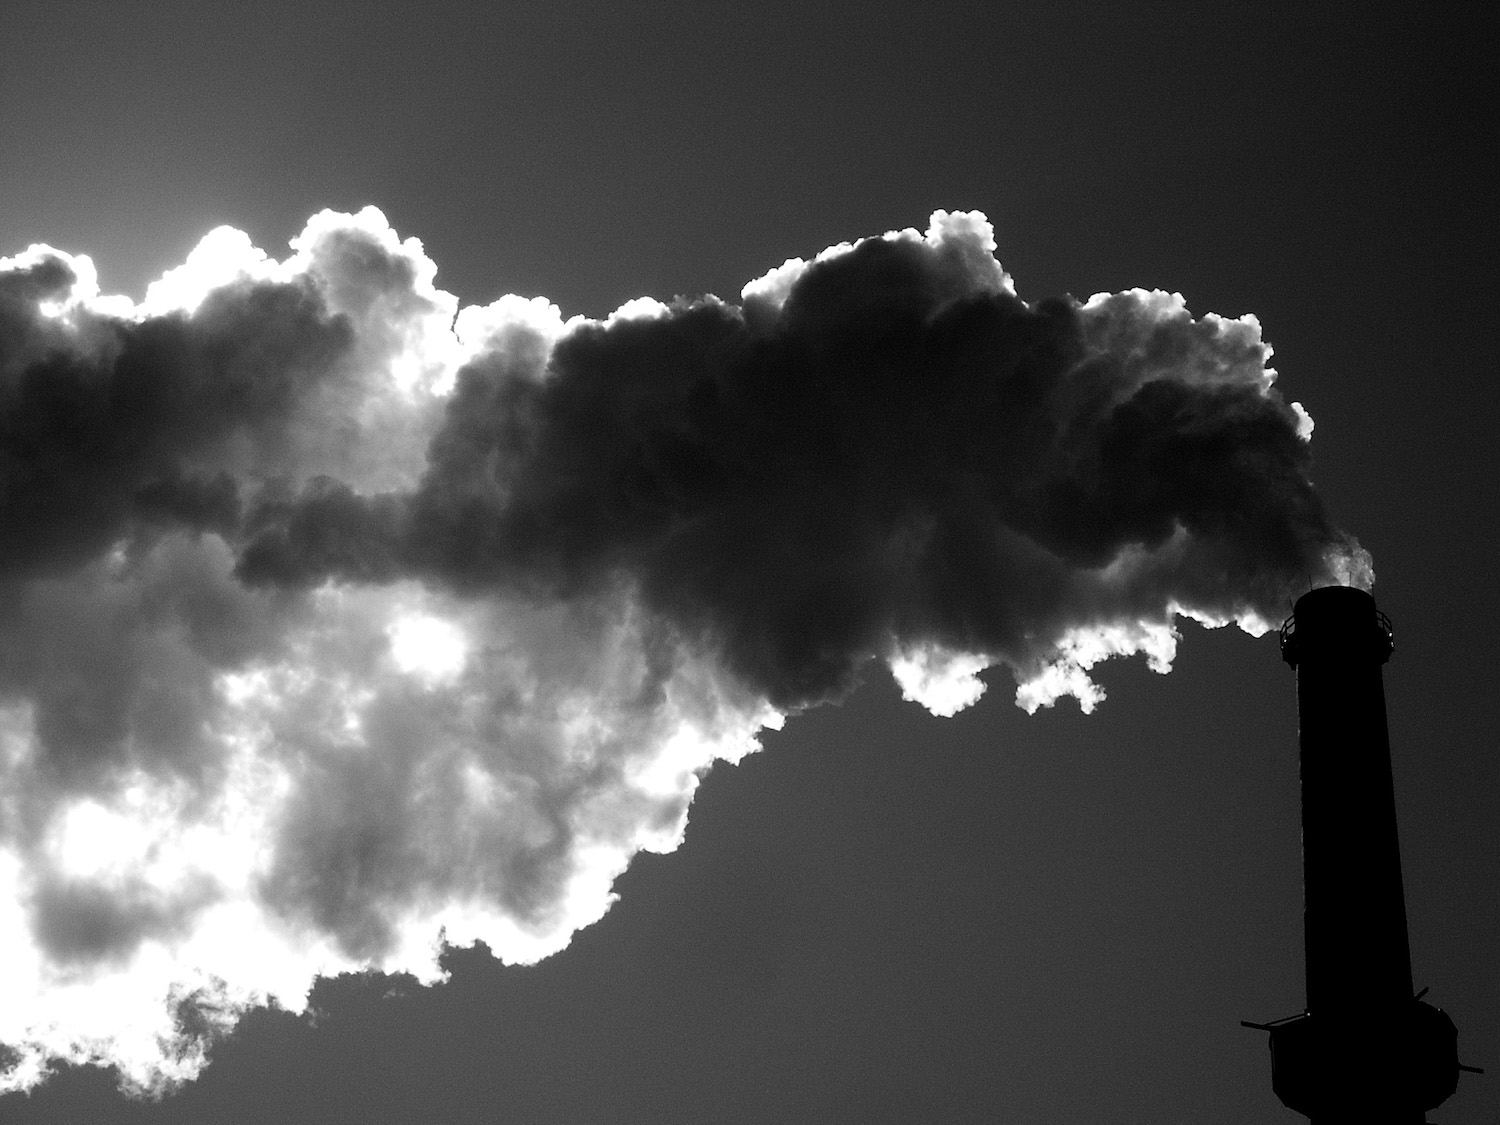 Carbon emissions from the Fisk Generating Station in Chicago, Illinois. (Photo Credit: Señor Codo / Fisk)